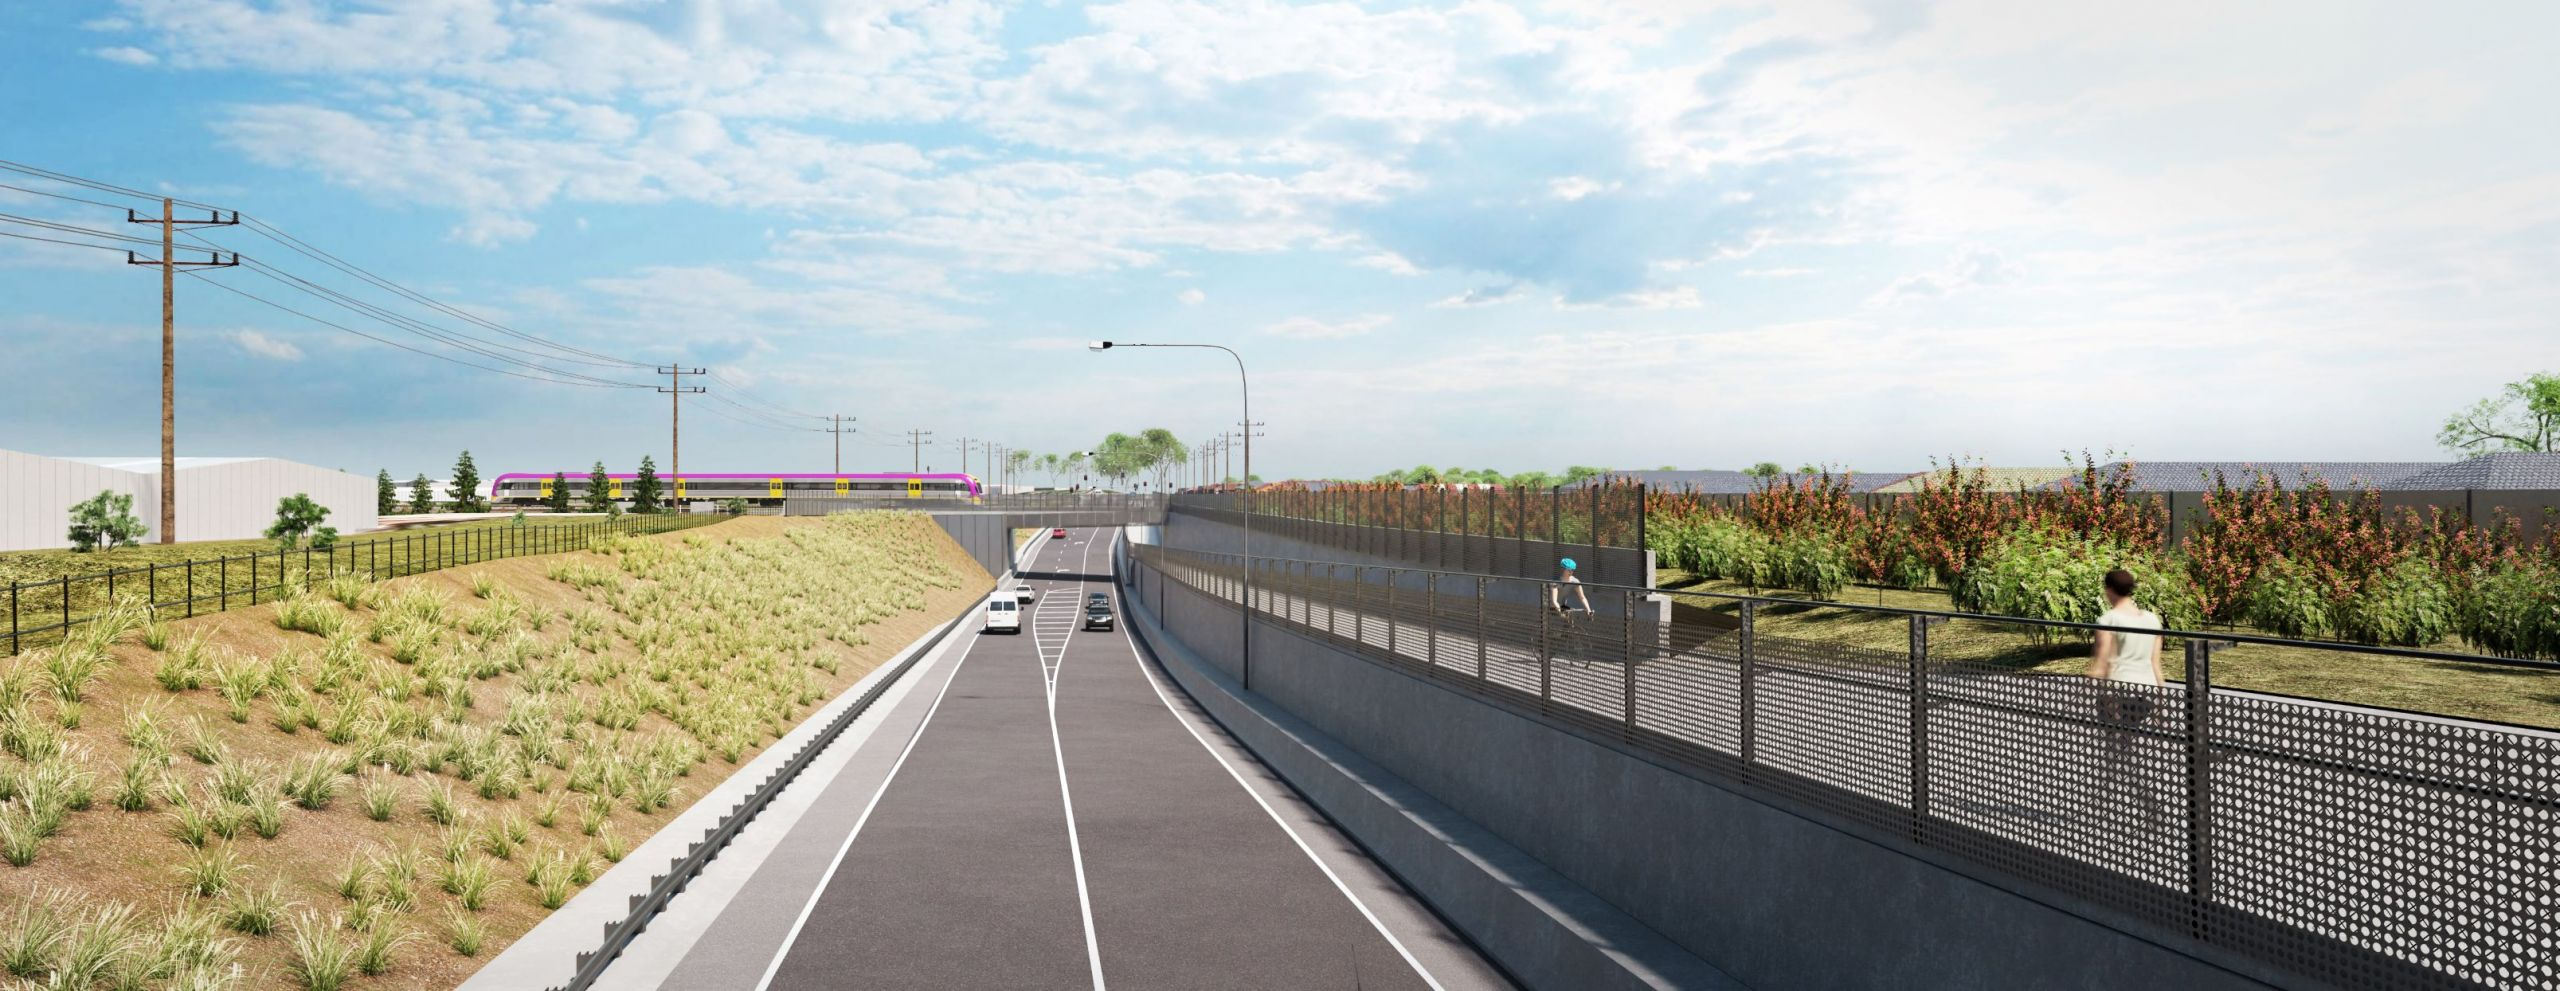 New Robinsons Road underpass, Deer Park – looking north